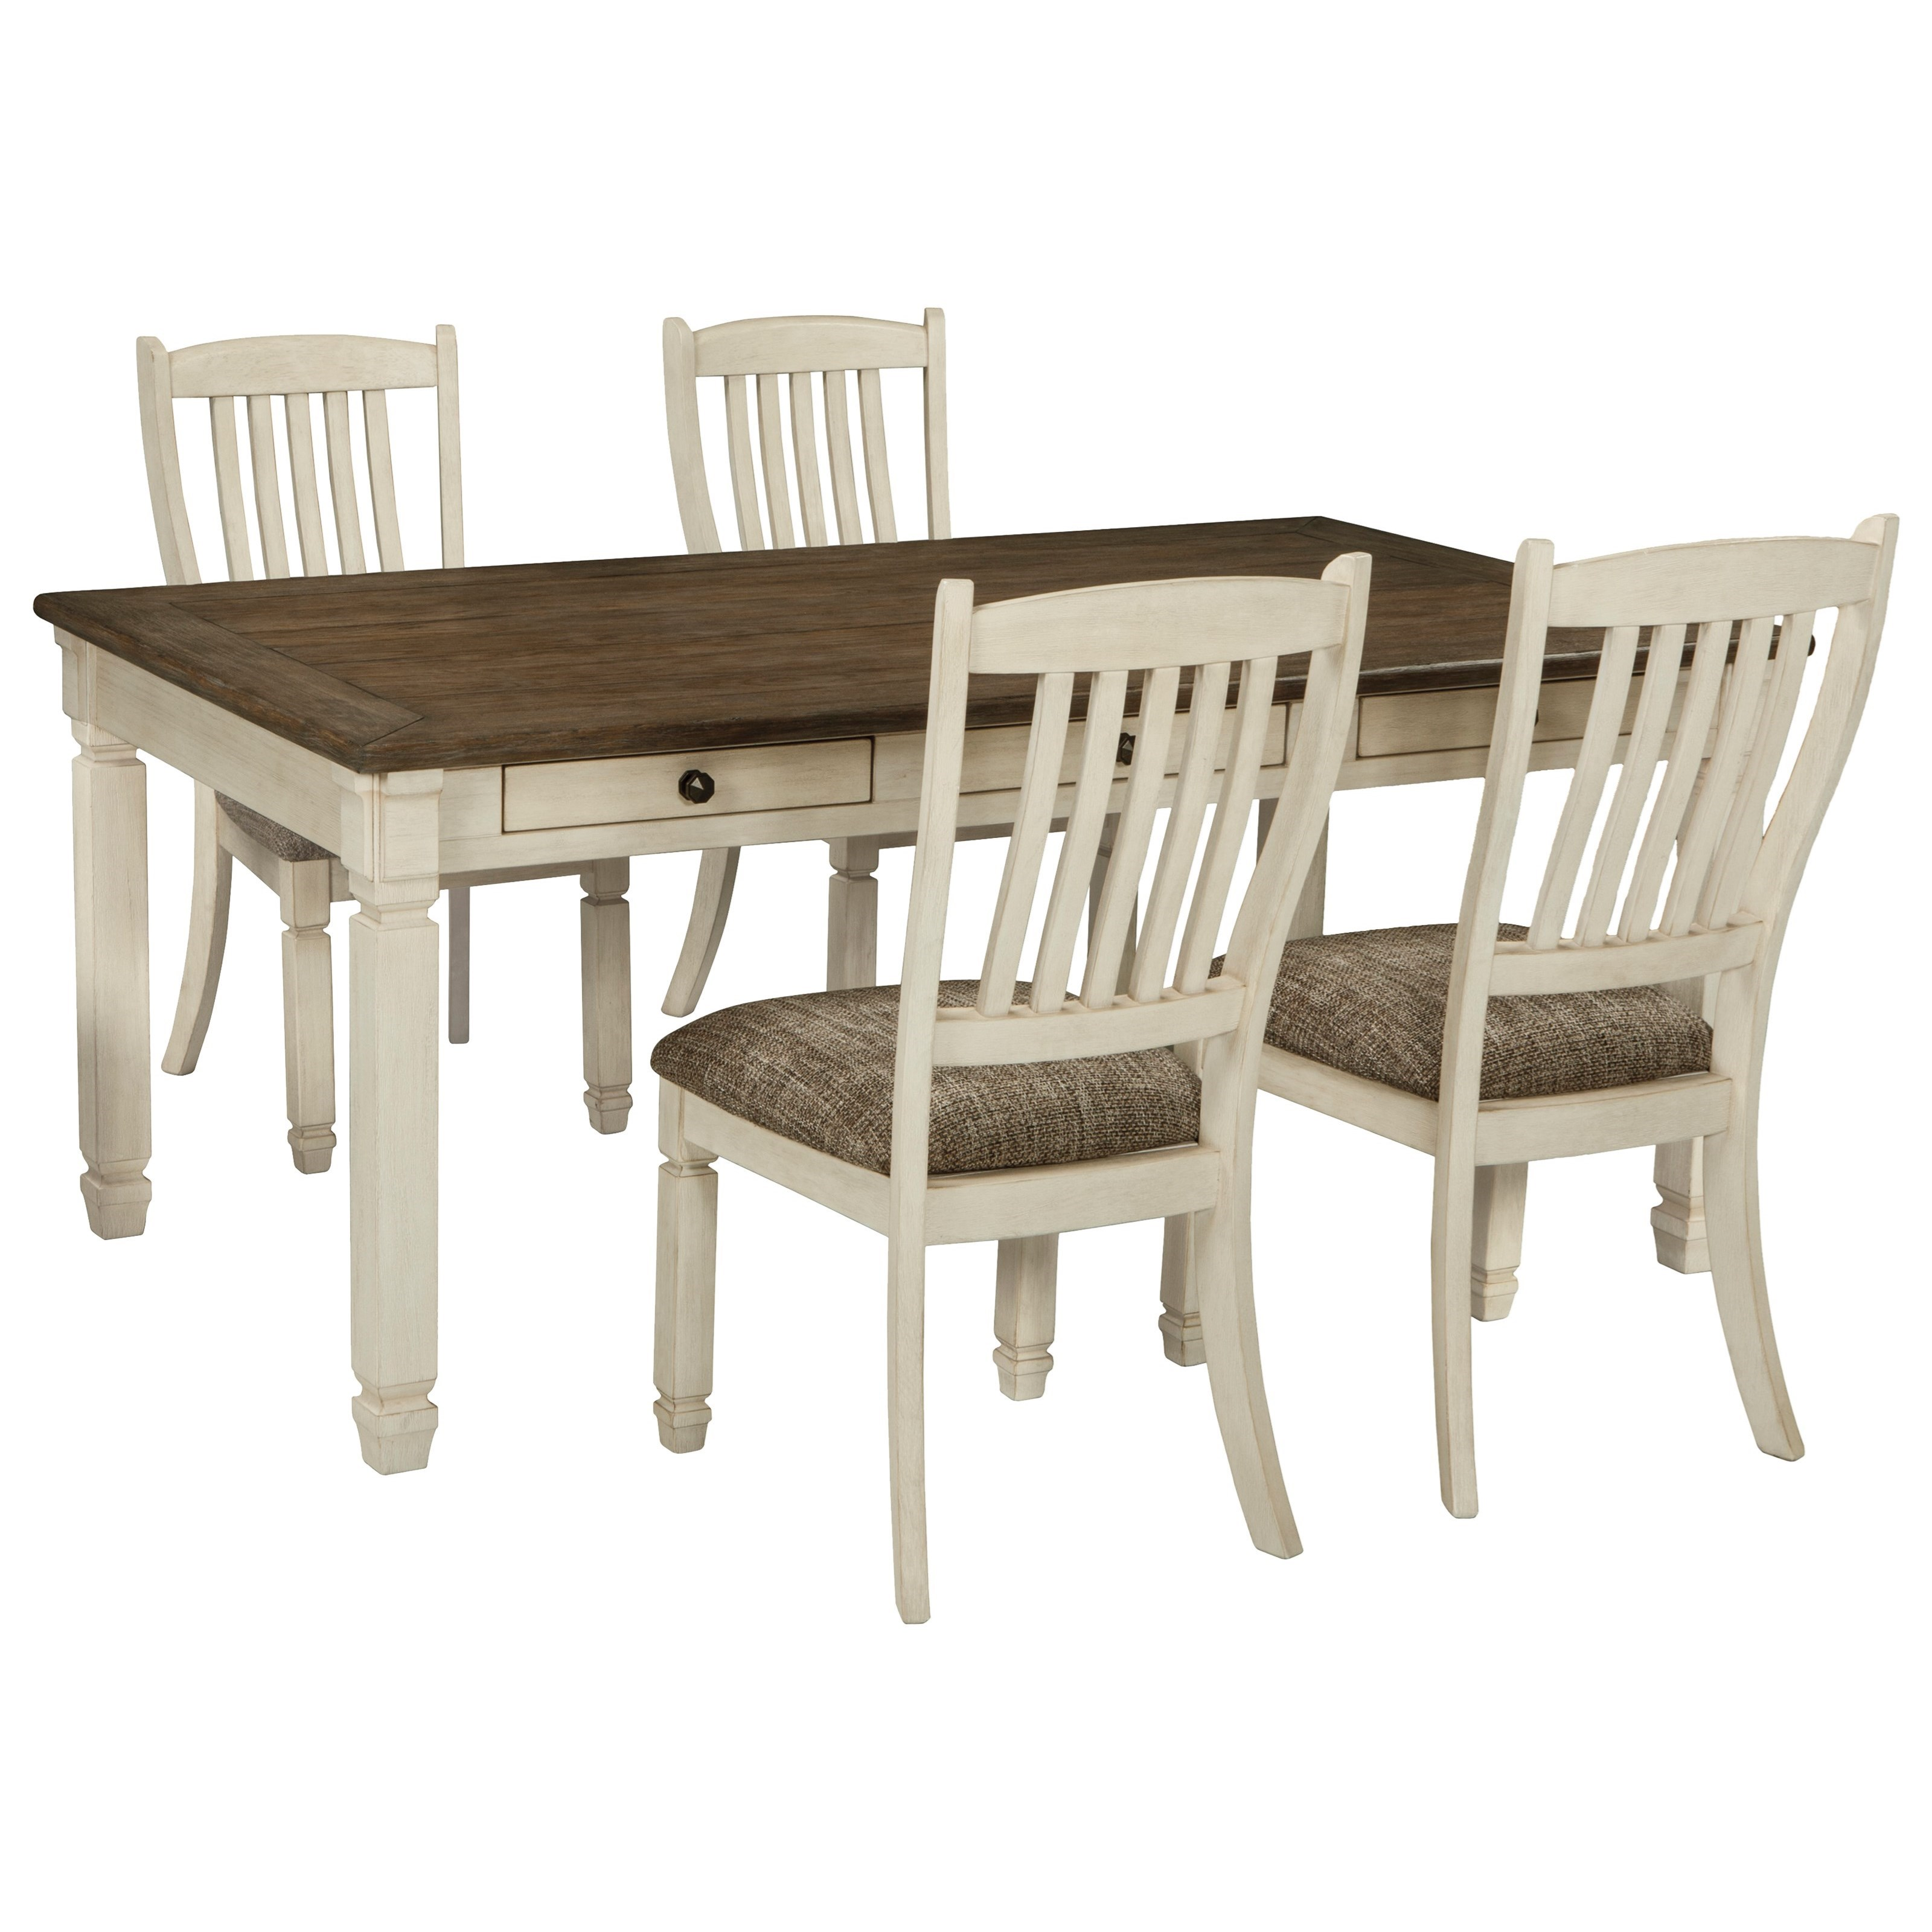 Bolanburg 5-Piece Dining Set by Signature Design by Ashley at HomeWorld Furniture